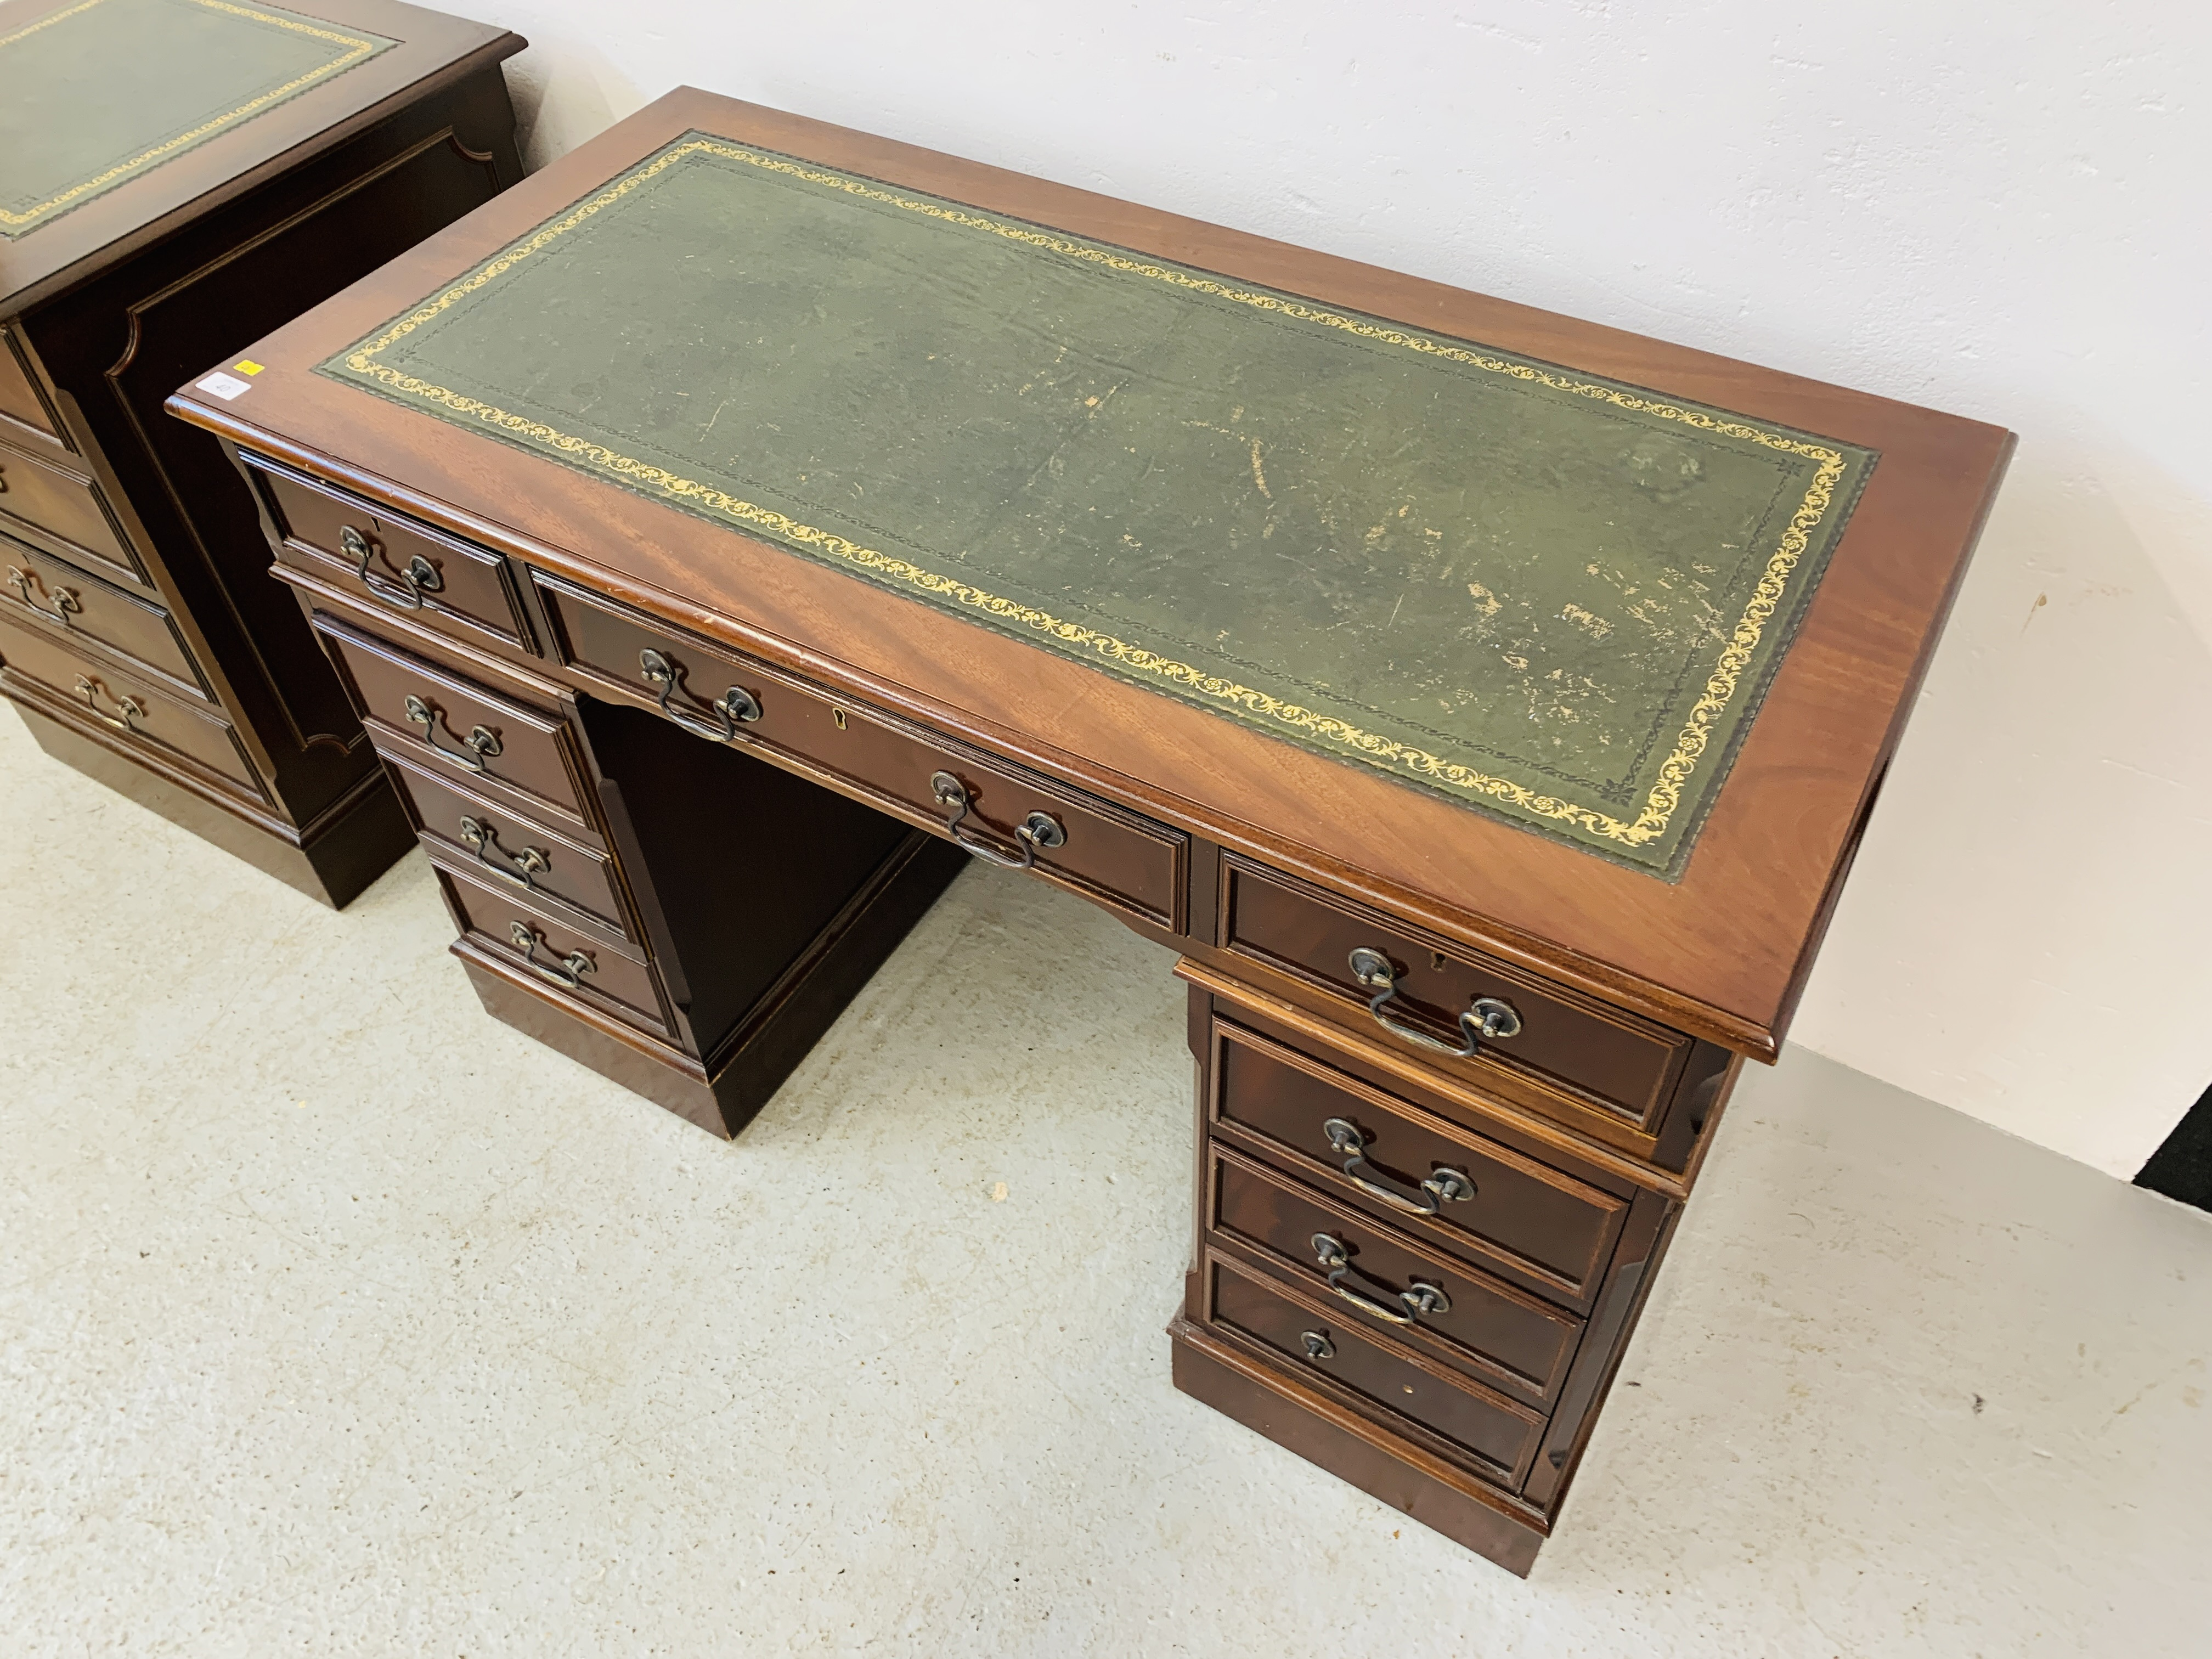 A REPRODUCTION MAHOGANY FINISH NINE DRAWER KNEE HOLE DESK WITH GREEN TOOLED LEATHER INSERT TO TOP - Image 4 of 14